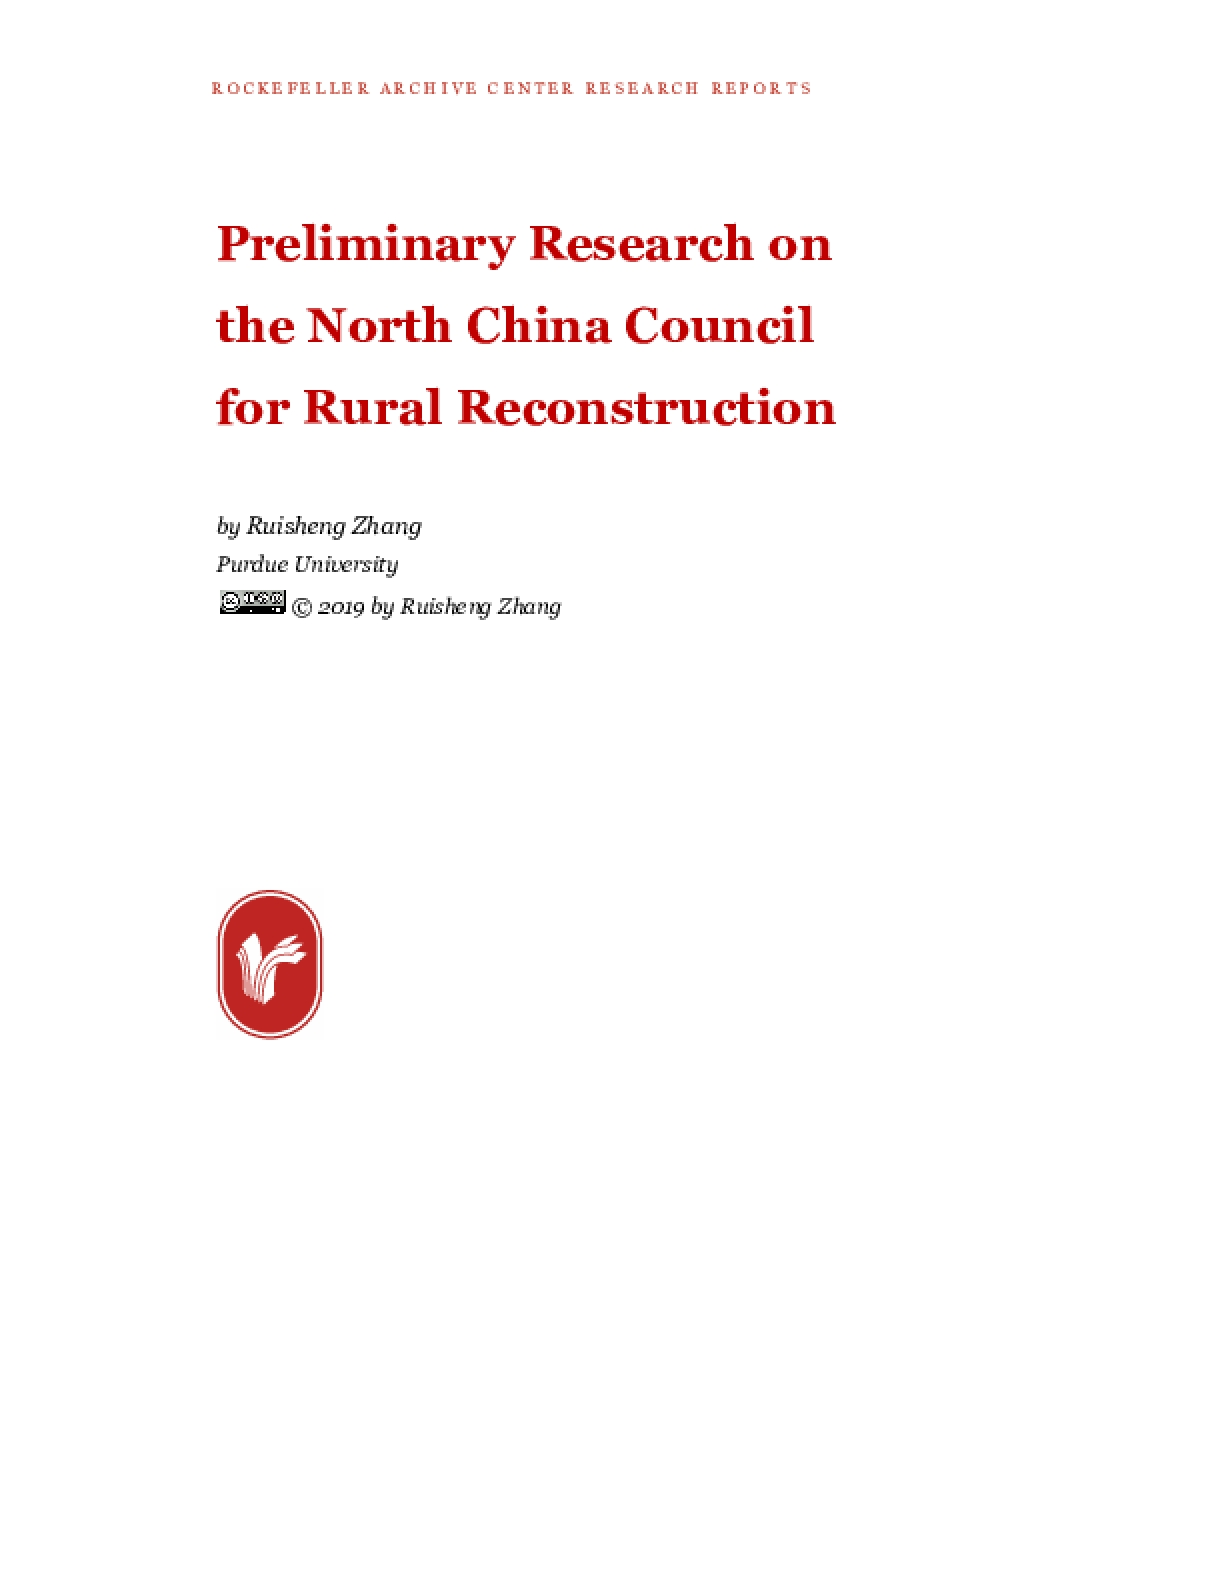 Preliminary Research on the North China Council for Rural Reconstruction